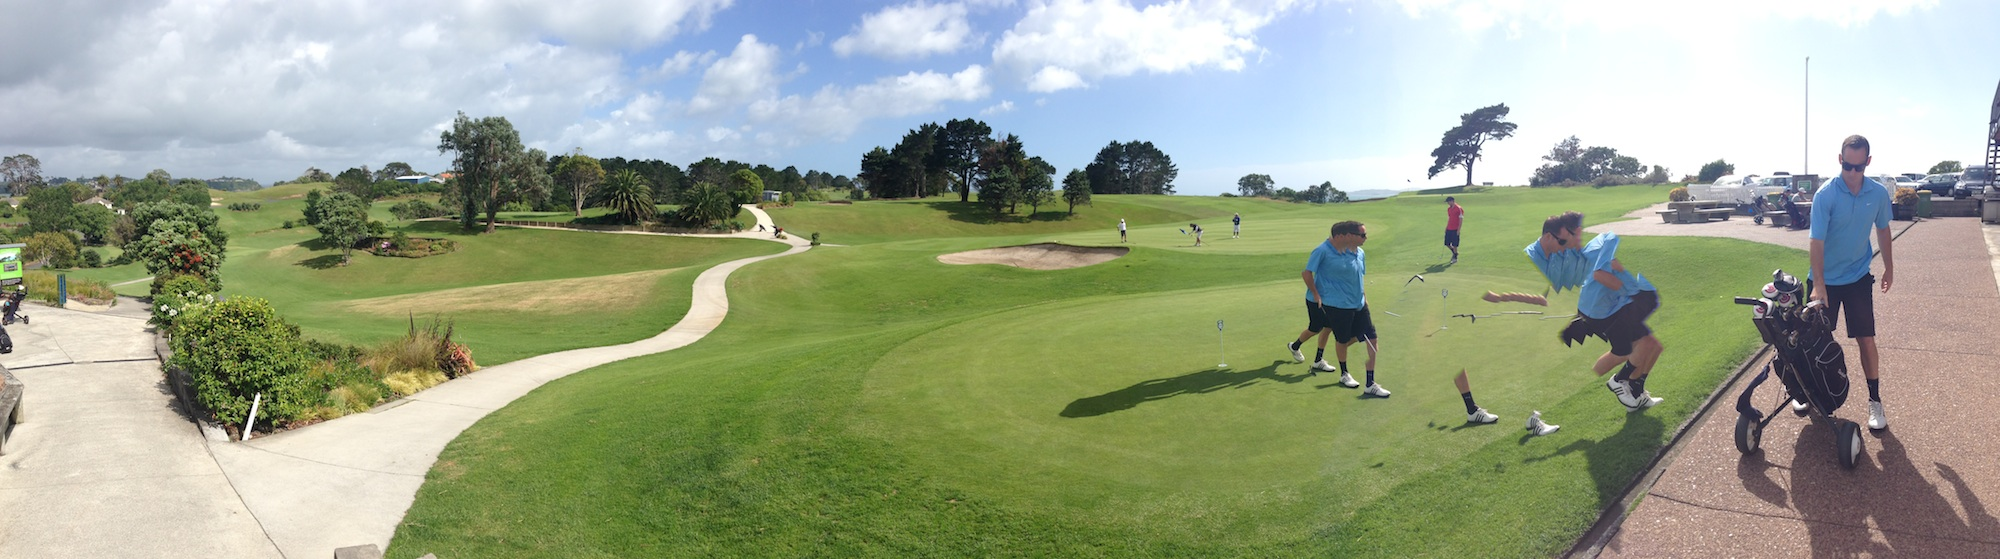 Another perfect day in paradise AKA Howick Golf Club (click to enlarge)